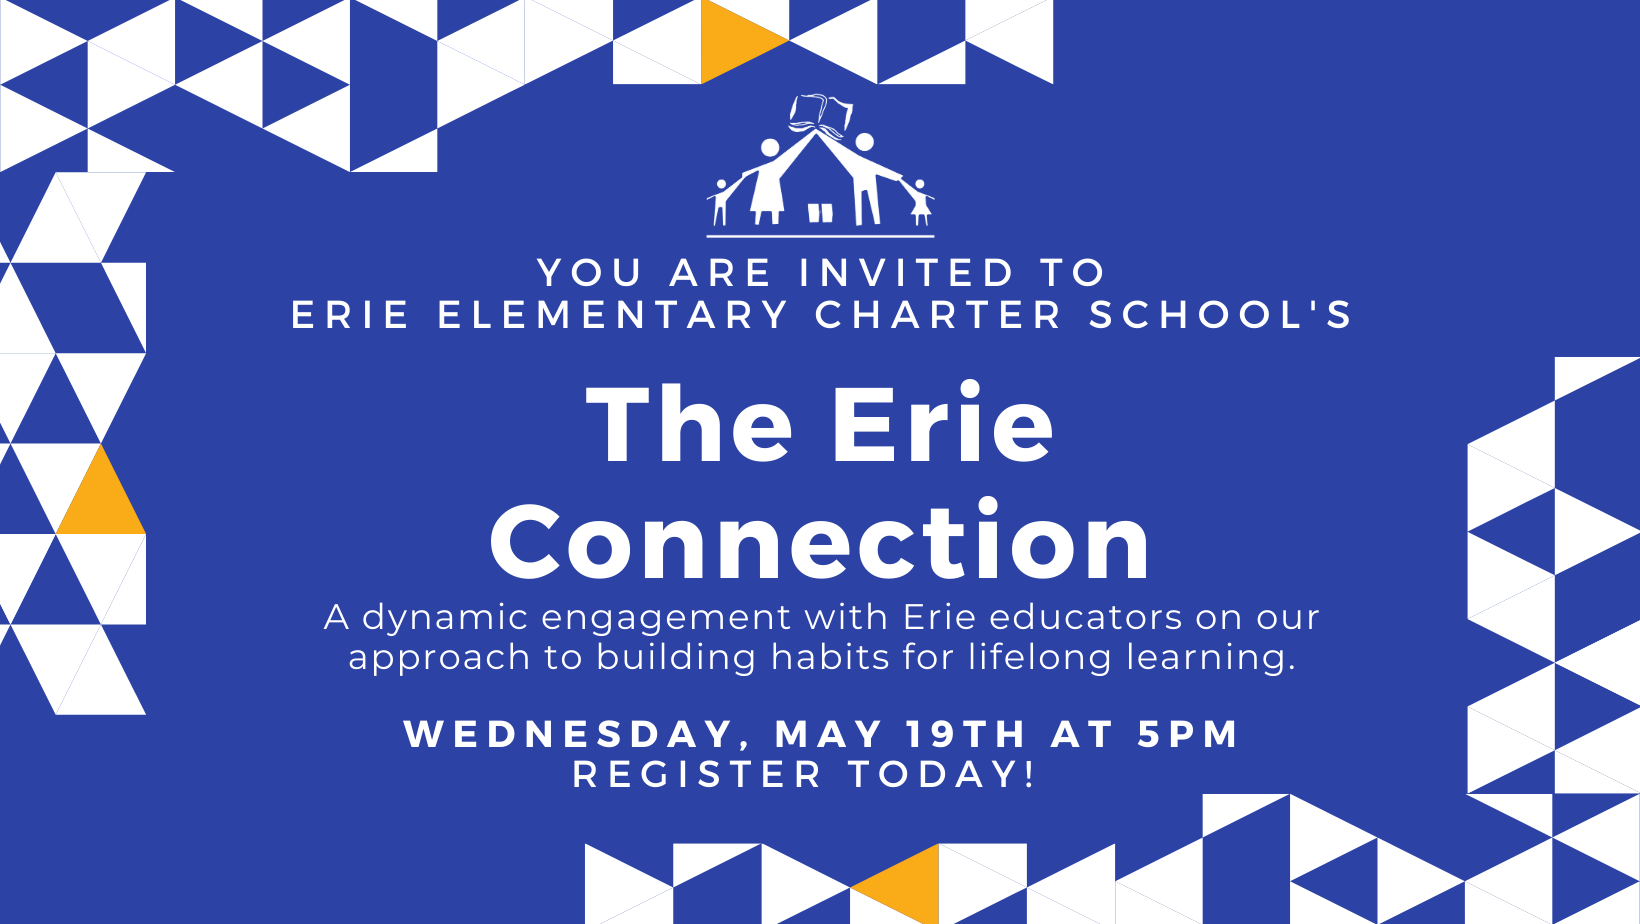 The Erie Connection